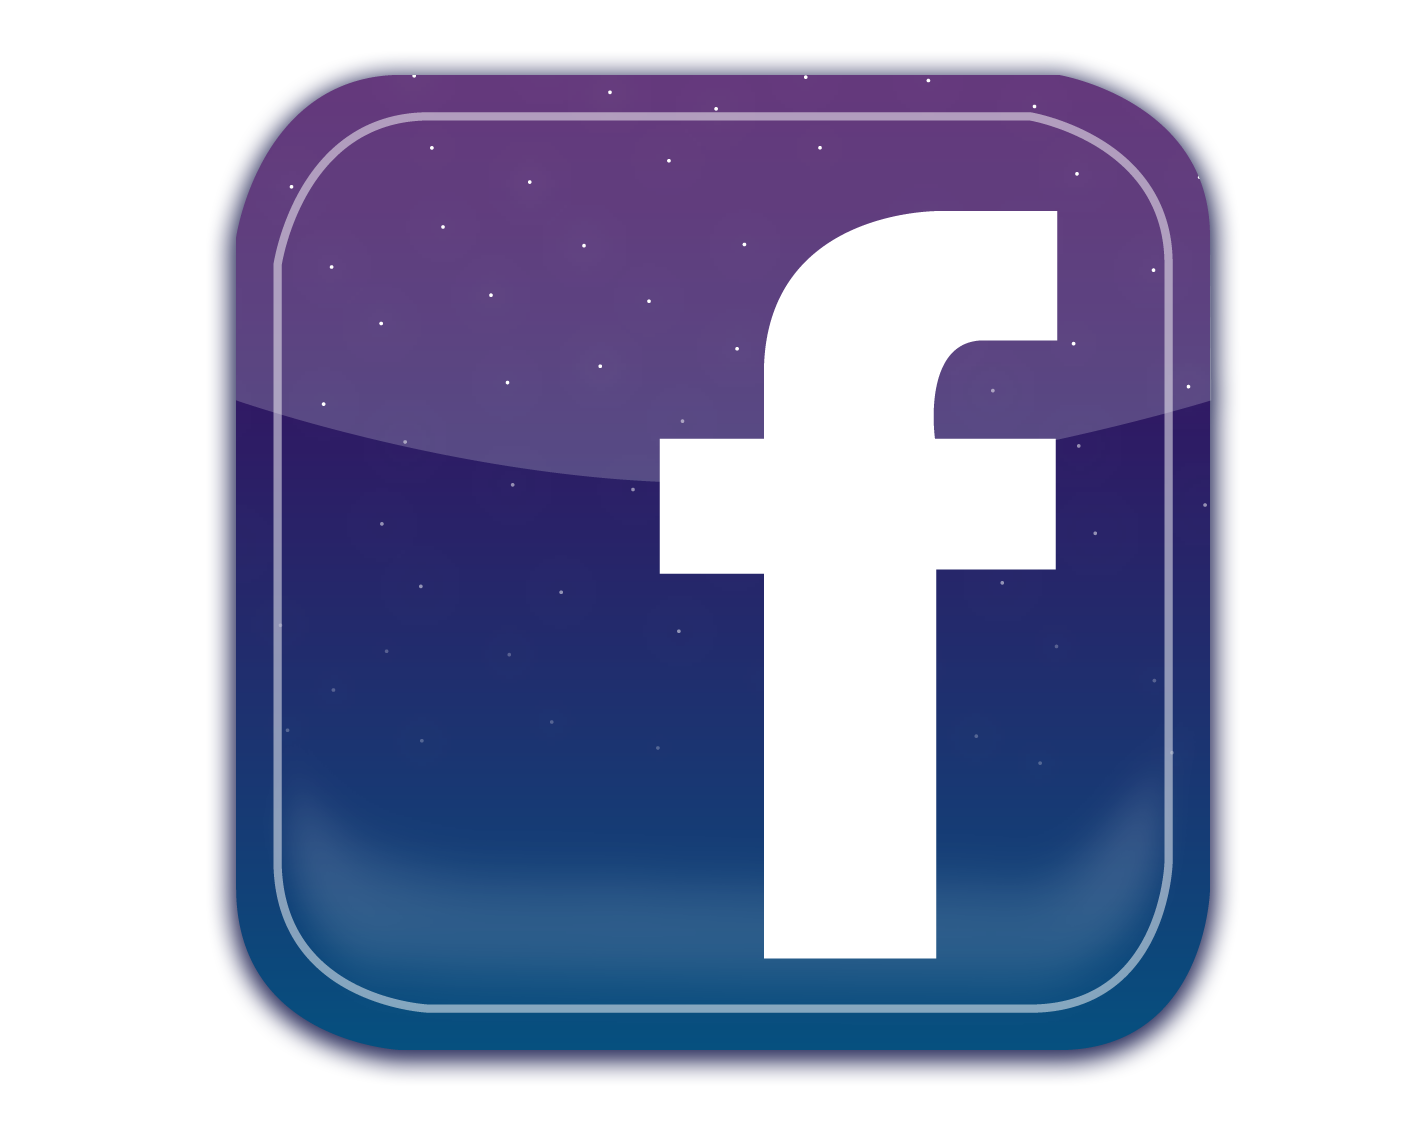 Facebook vector png. Logo transparent pictures free